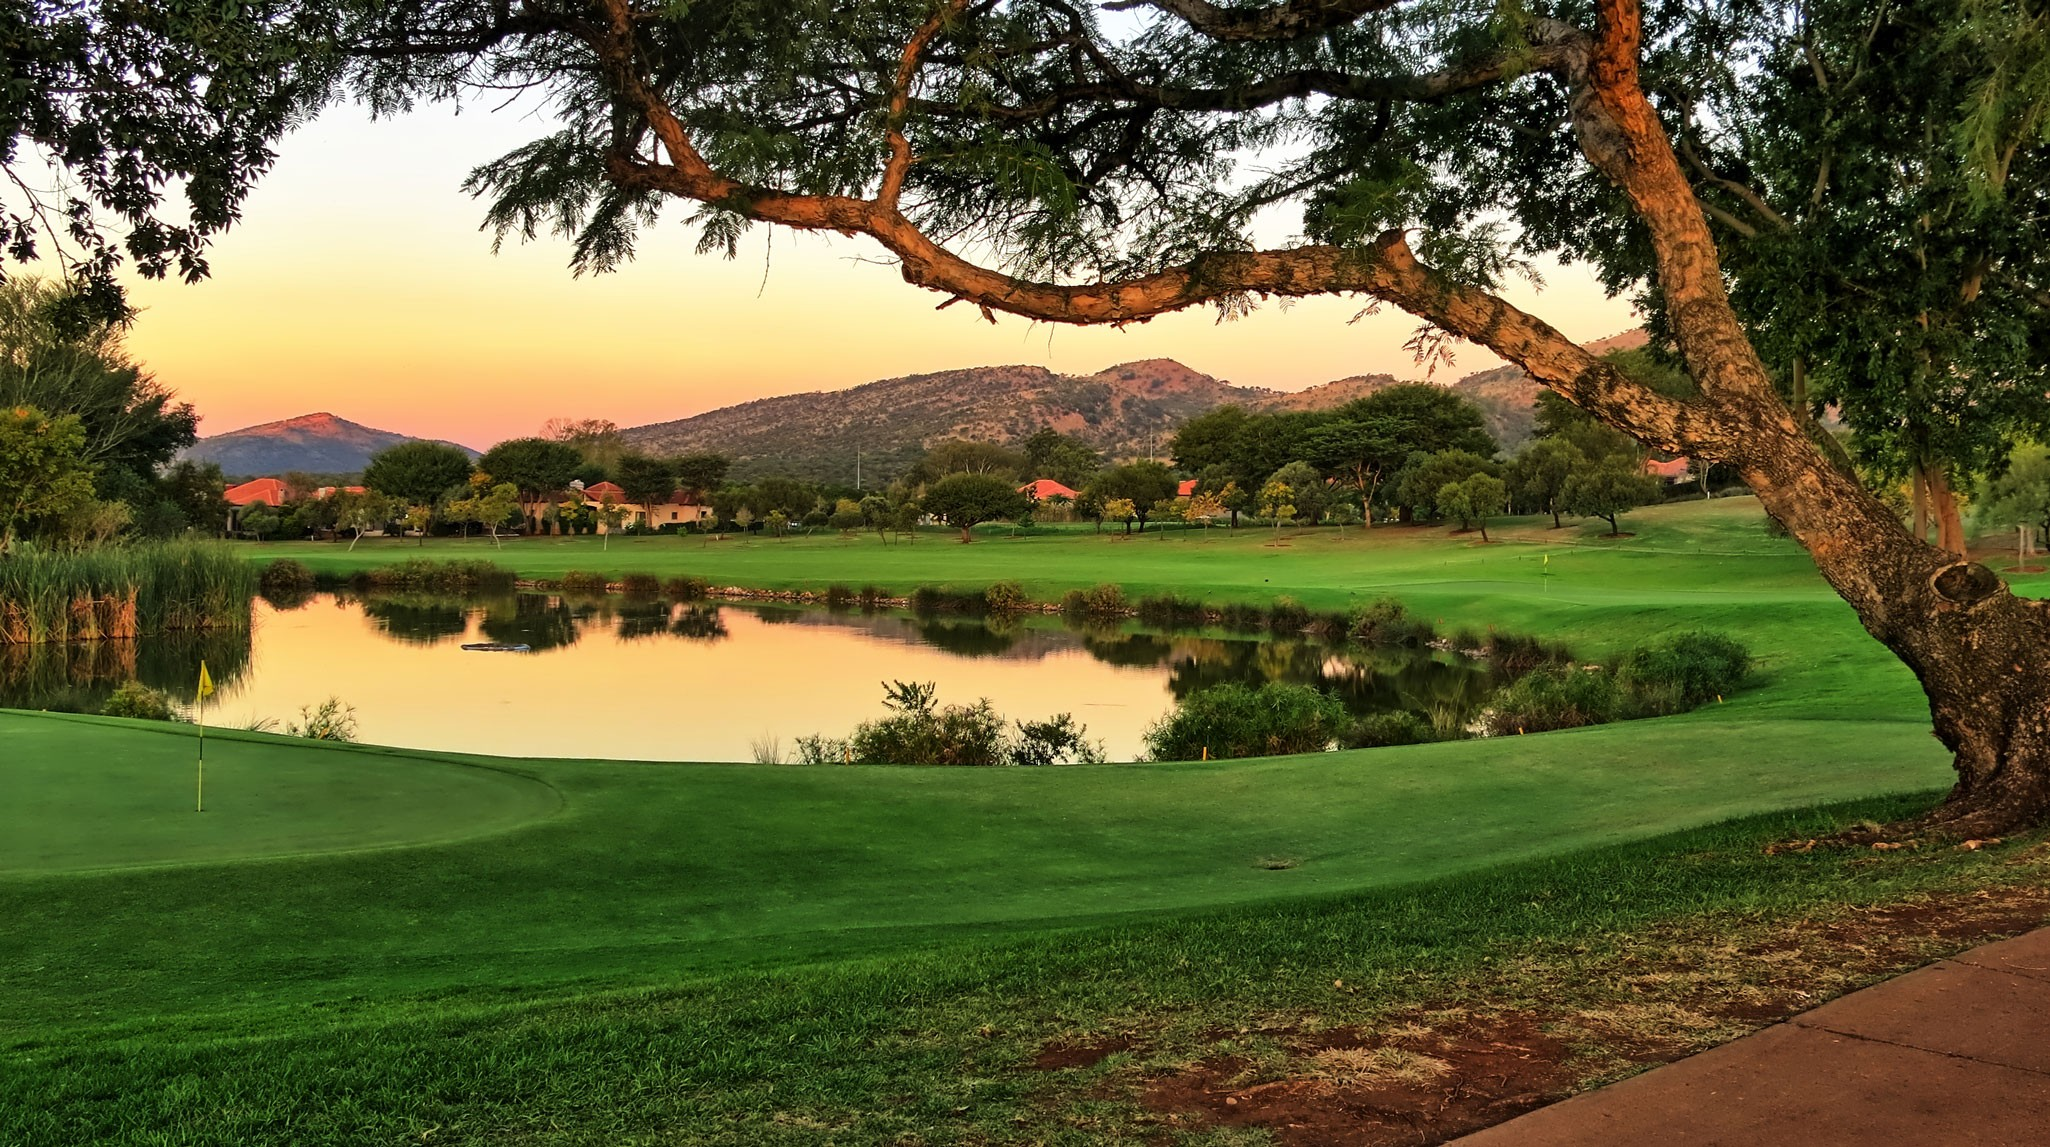 Golf Course Effect On Property Values